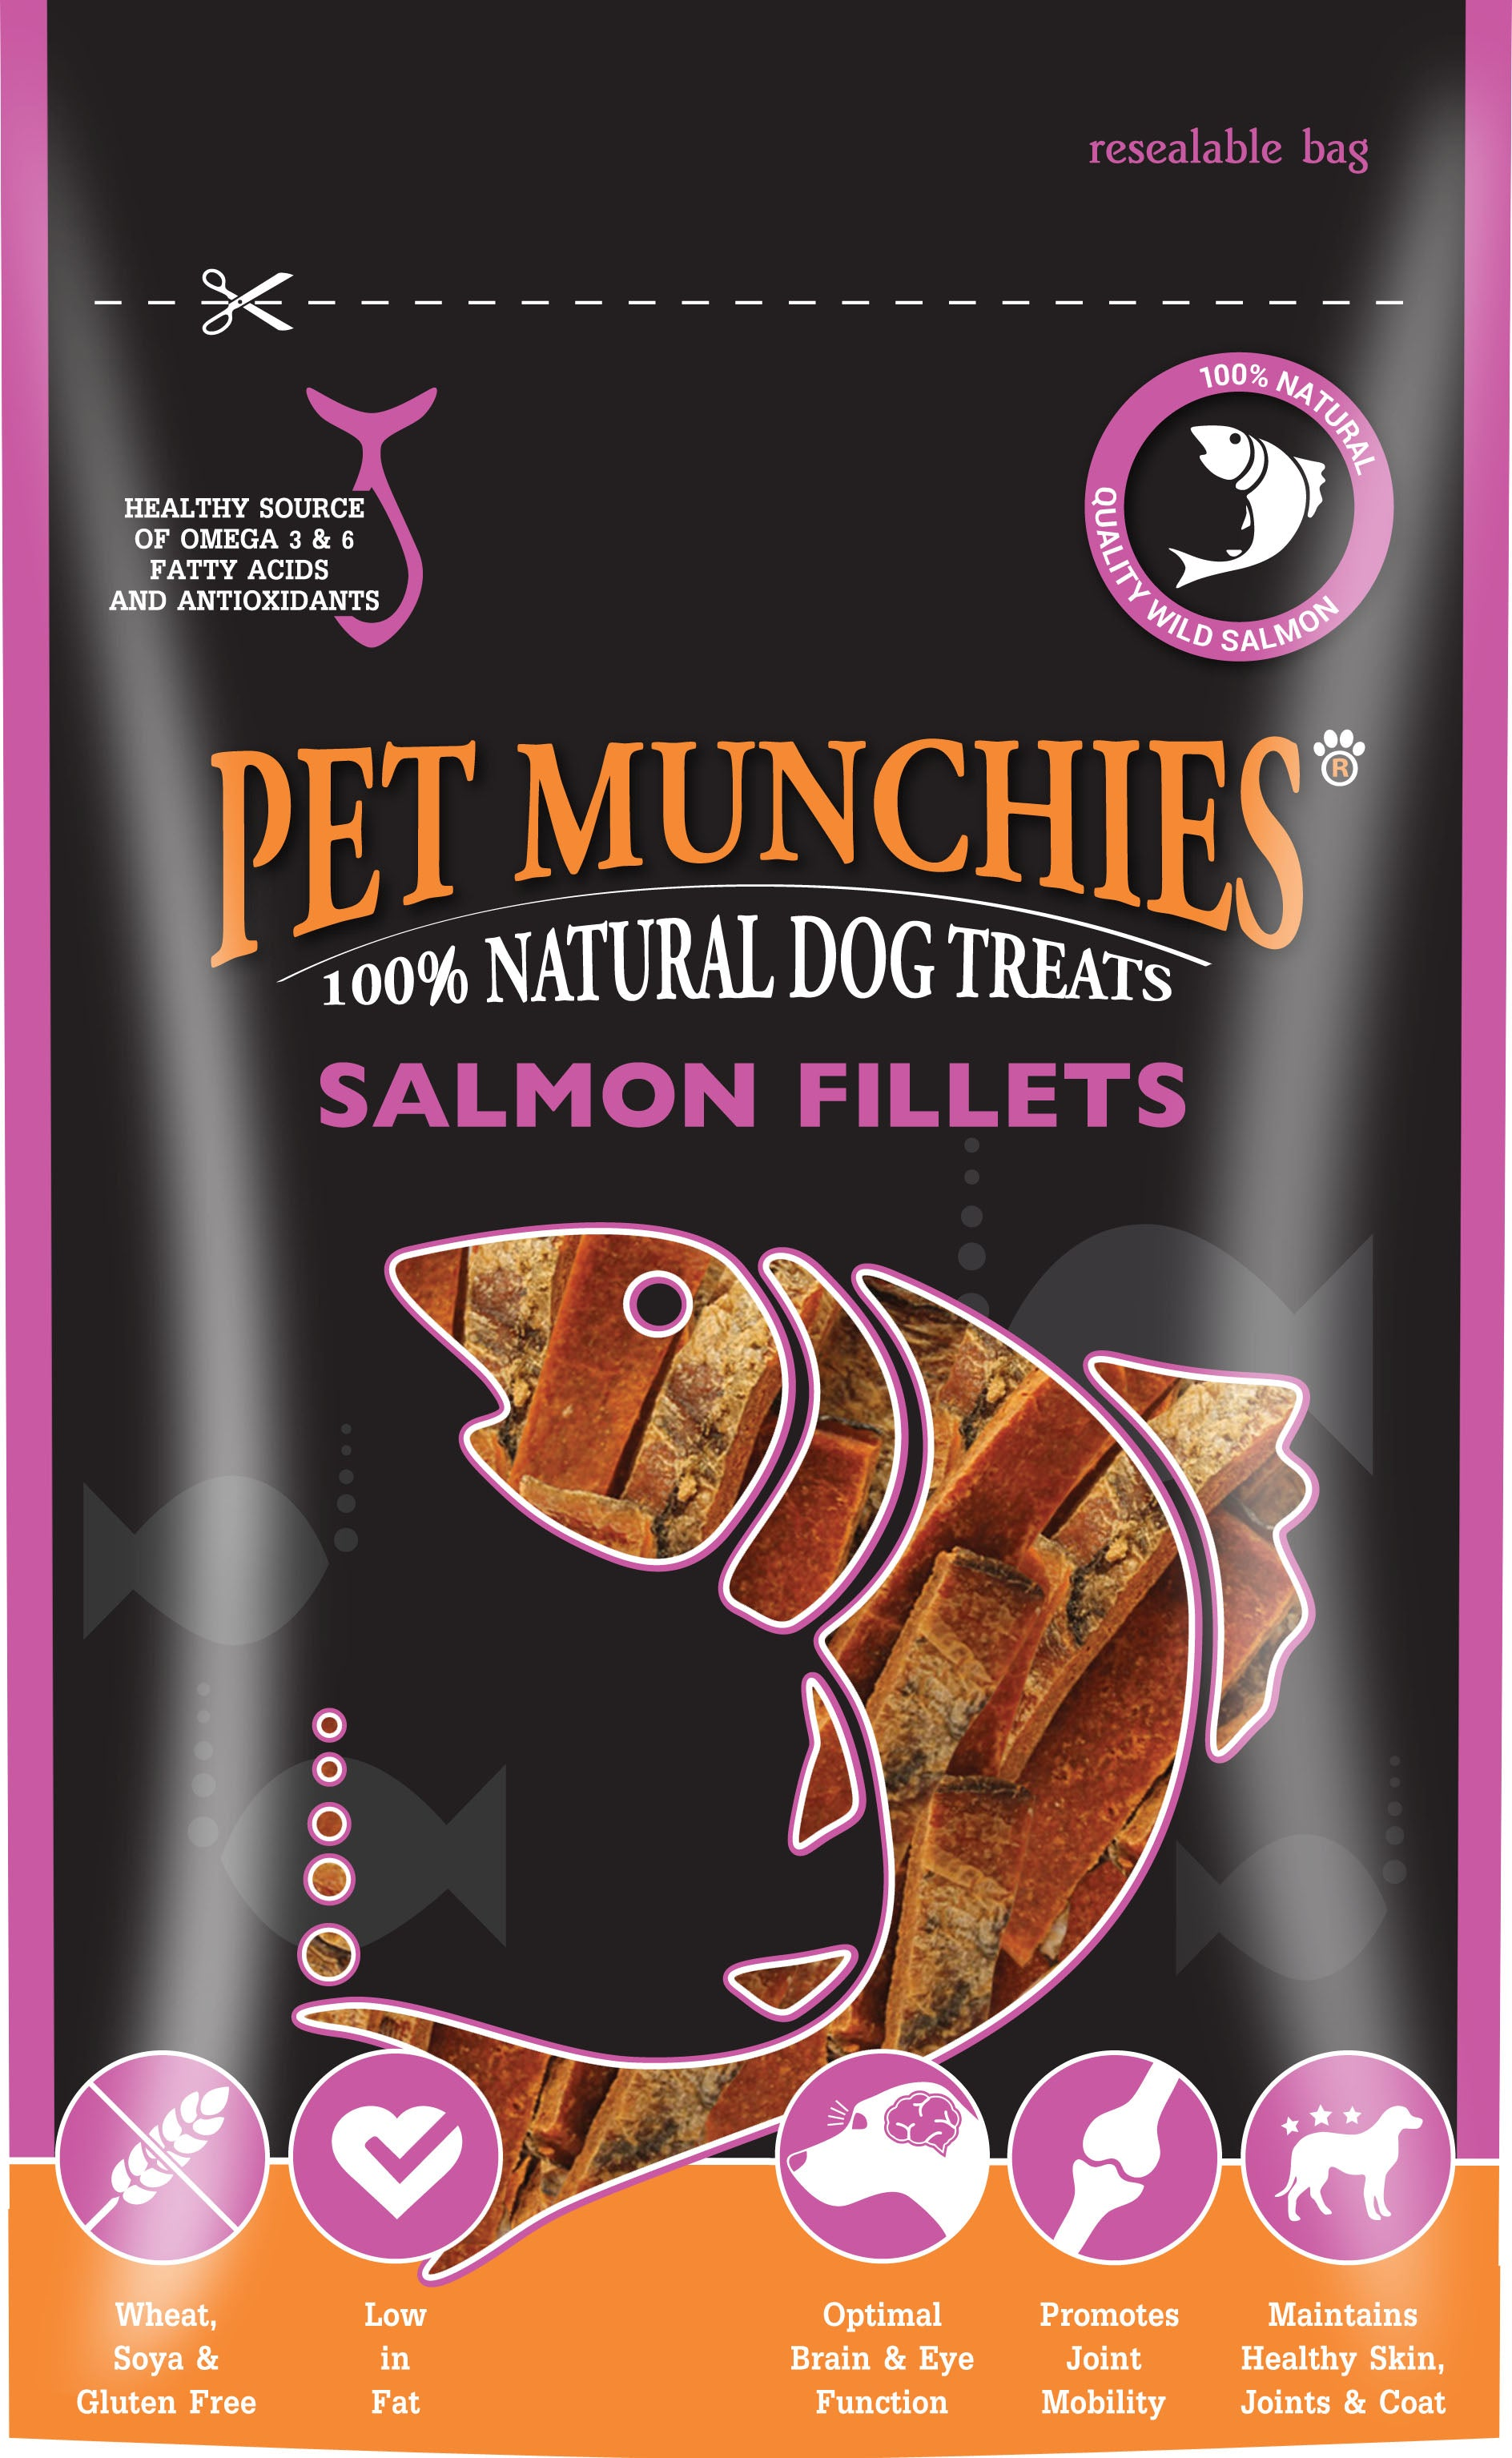 Pet Munchies 100% Natural Salmon Fillets Dog Treats